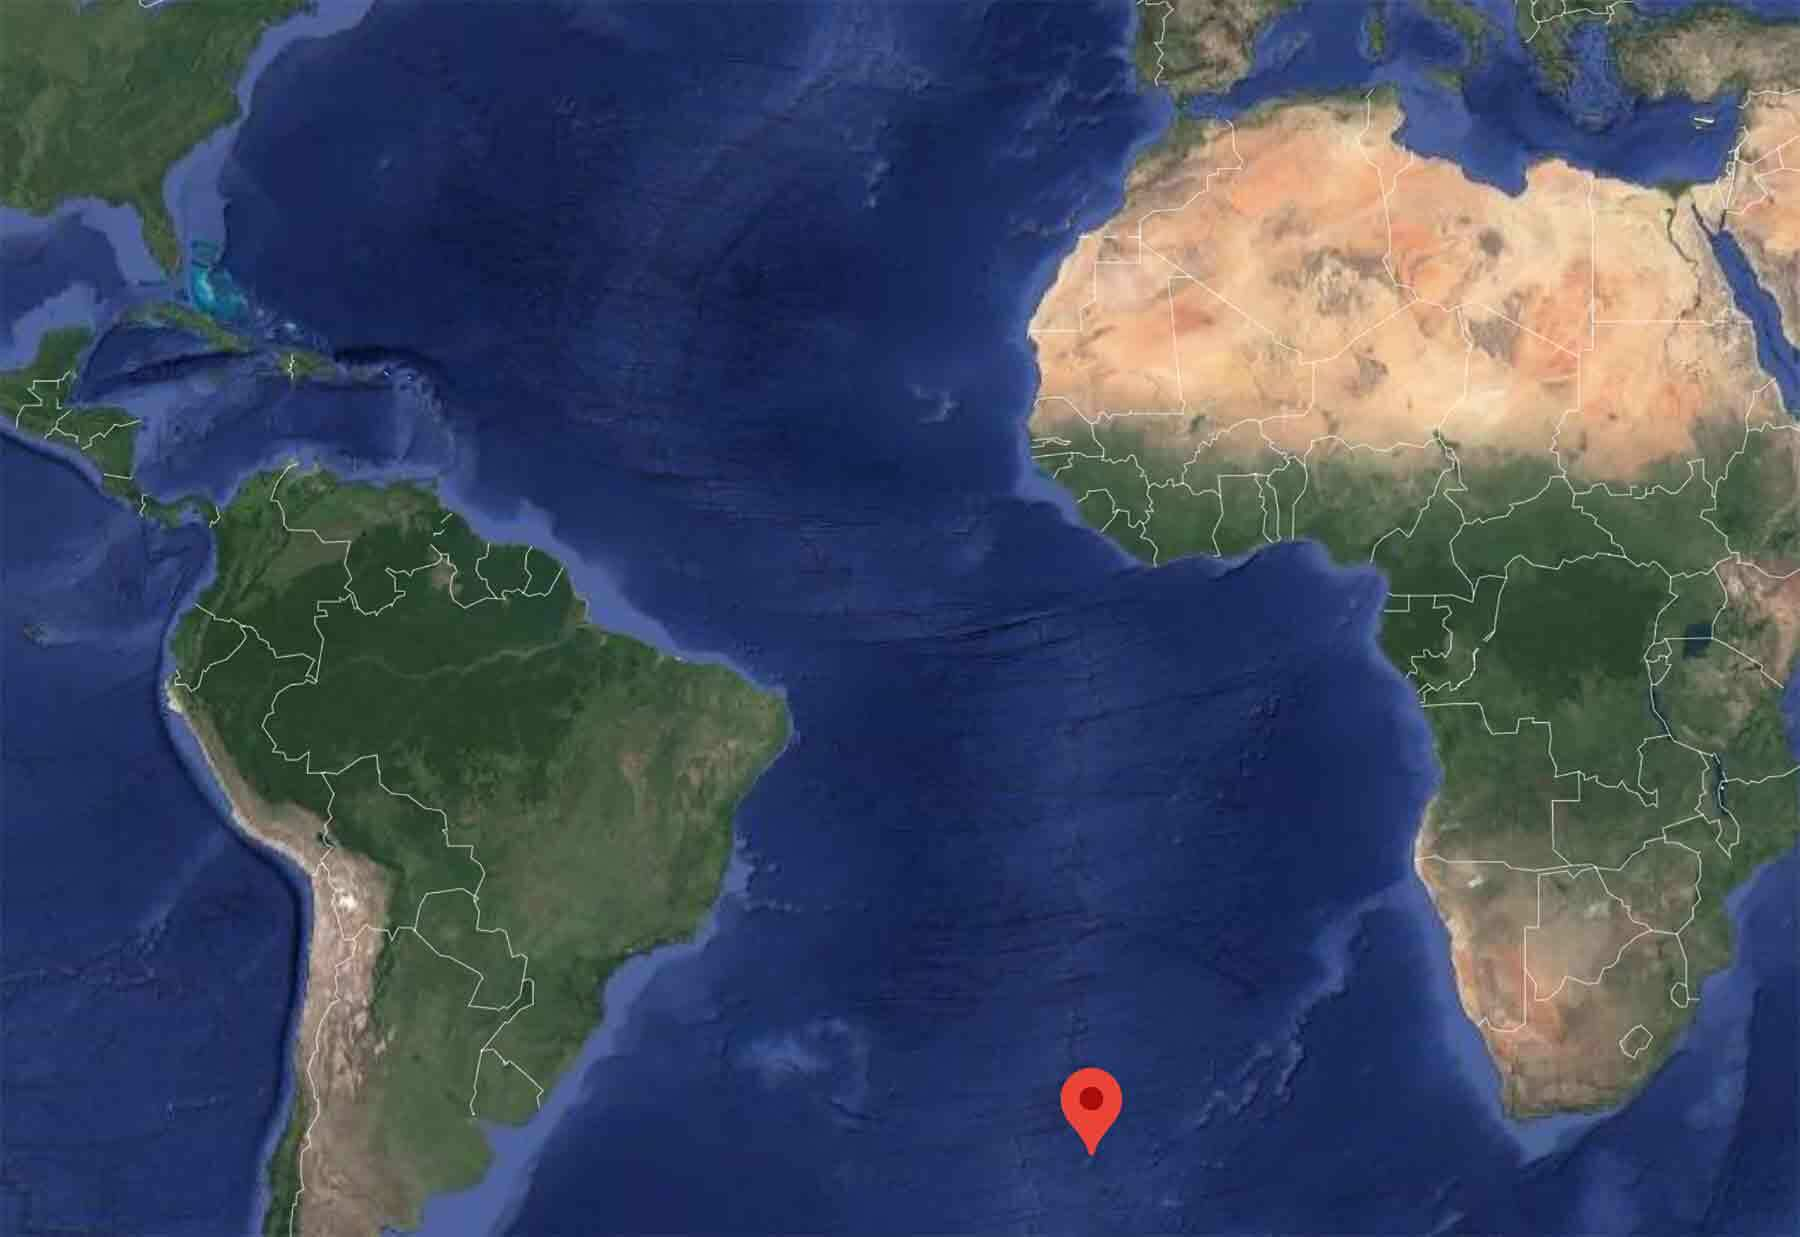 A Google Maps view of Tristan da Cunha with a red pin marking a spot in the ocean.